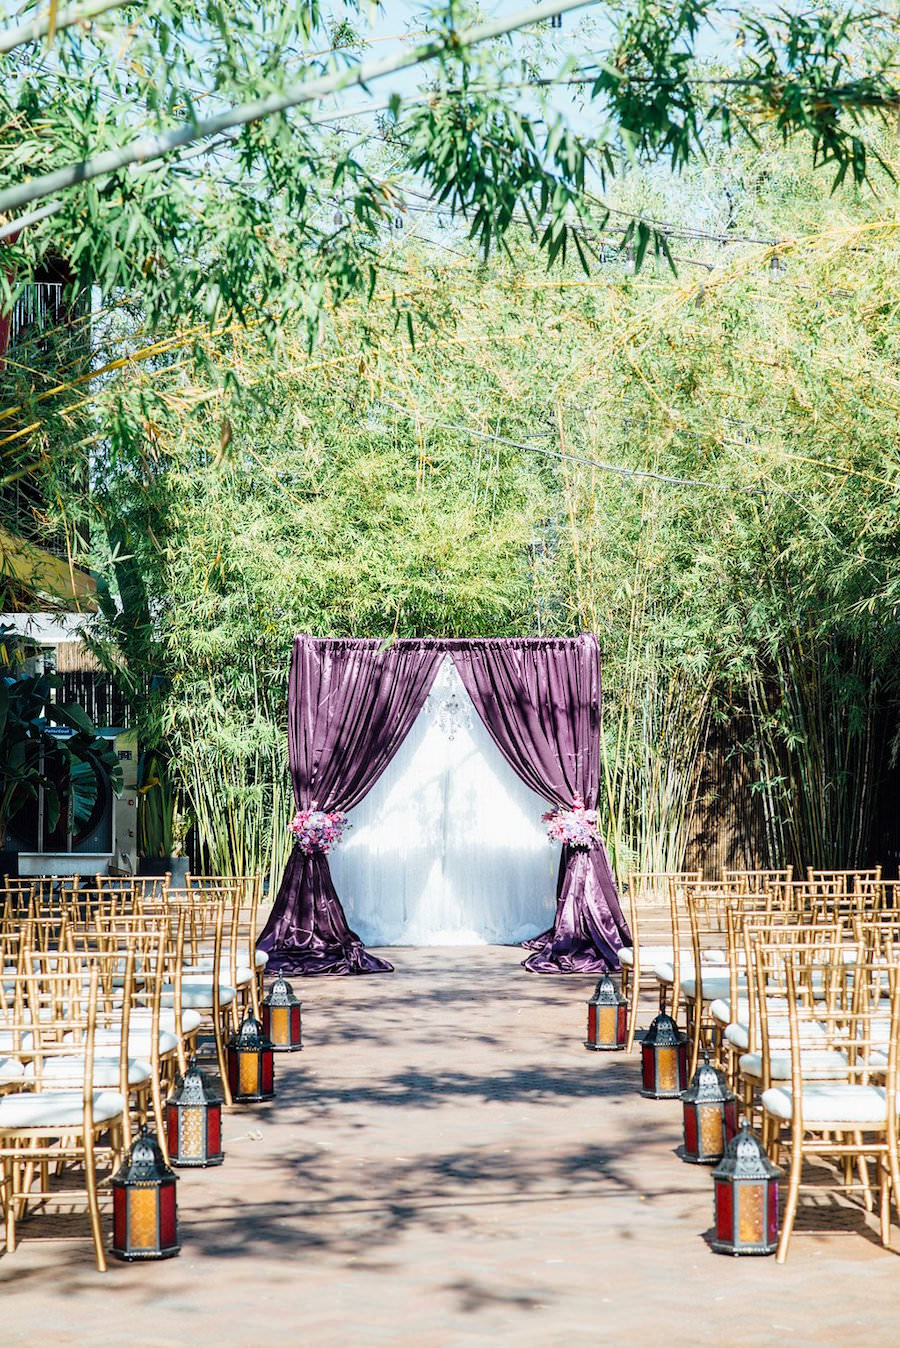 Outdoor Wedding Ceremony at St Pete Wedding Venue NOVA 535 with Purple Linen Flocked Archway and Gold Chaivari Chairs | St. Petersburg Wedding Chair Rentals ... & Outdoor Wedding Ceremony at St Pete Wedding Venue NOVA 535 with ...